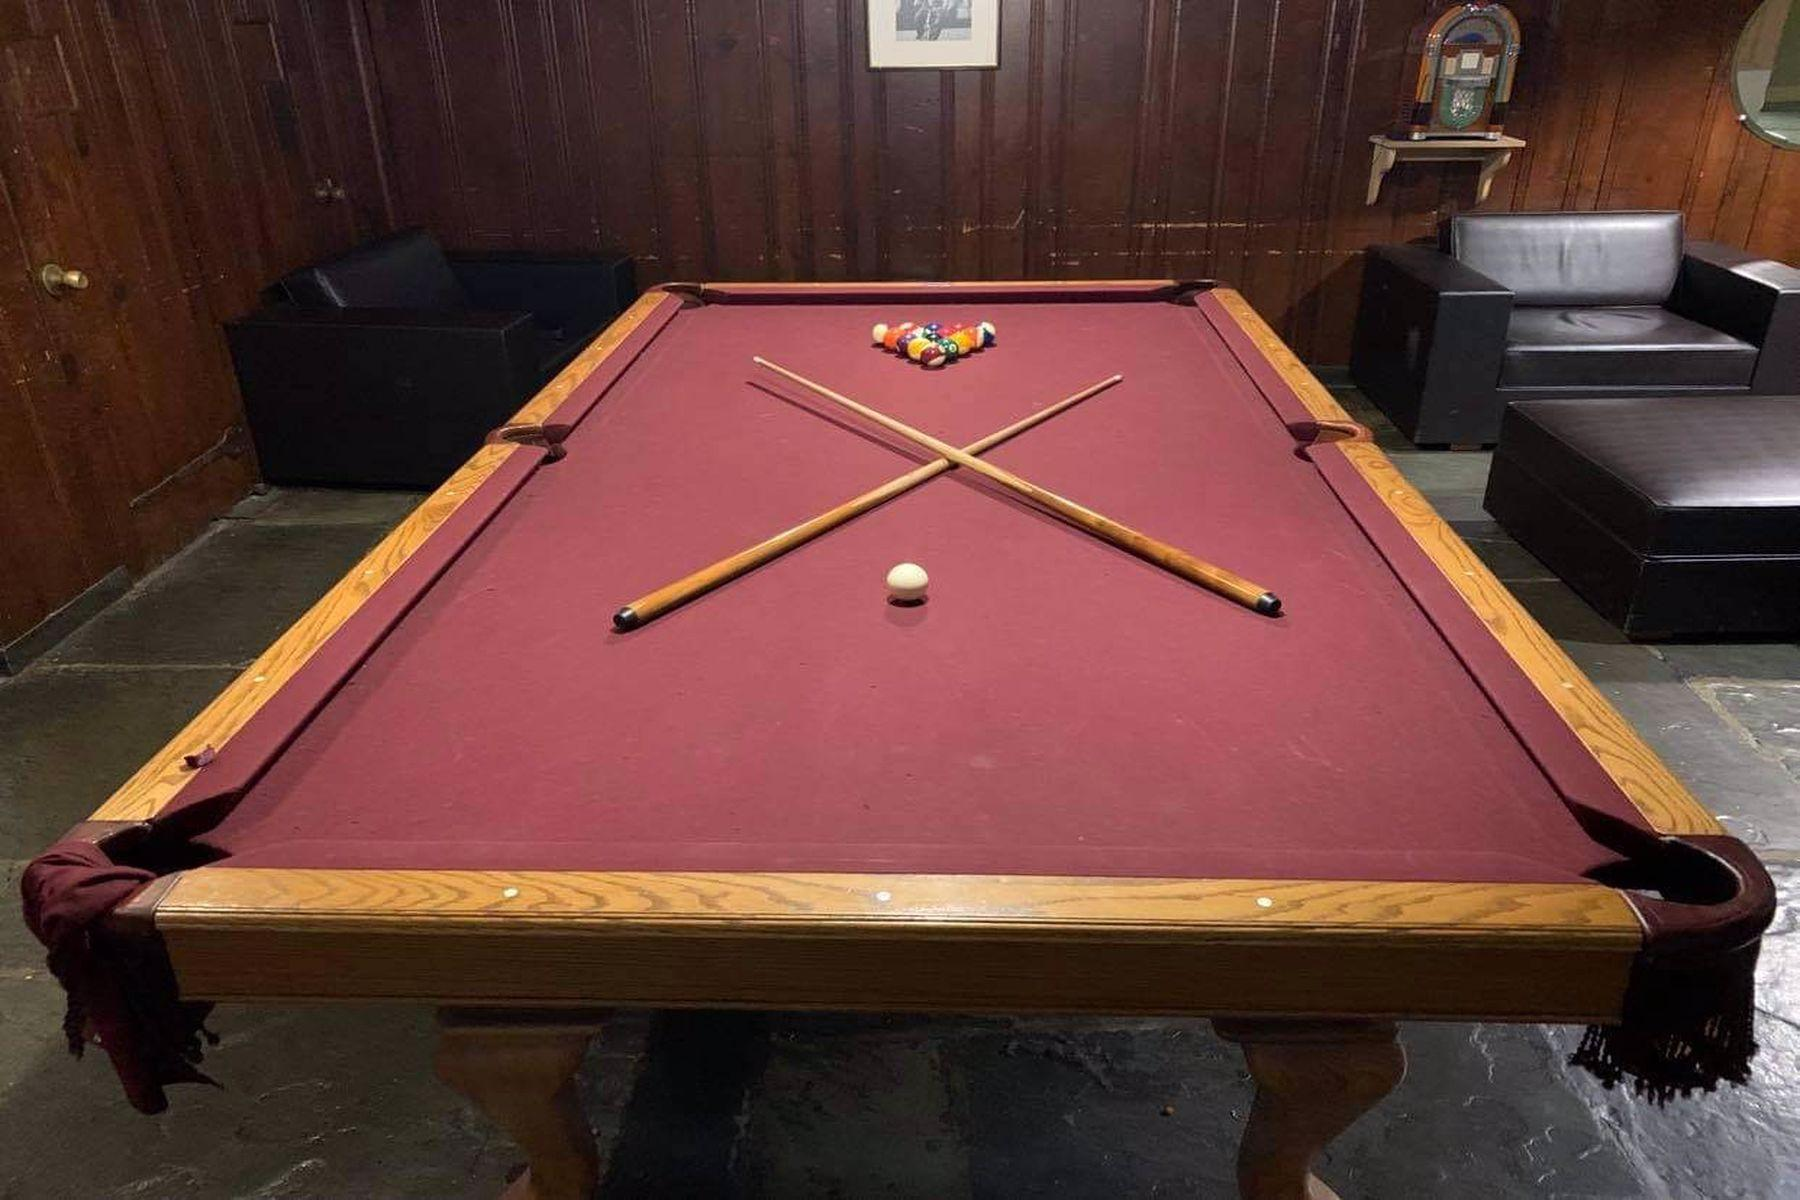 Forbes College pool table